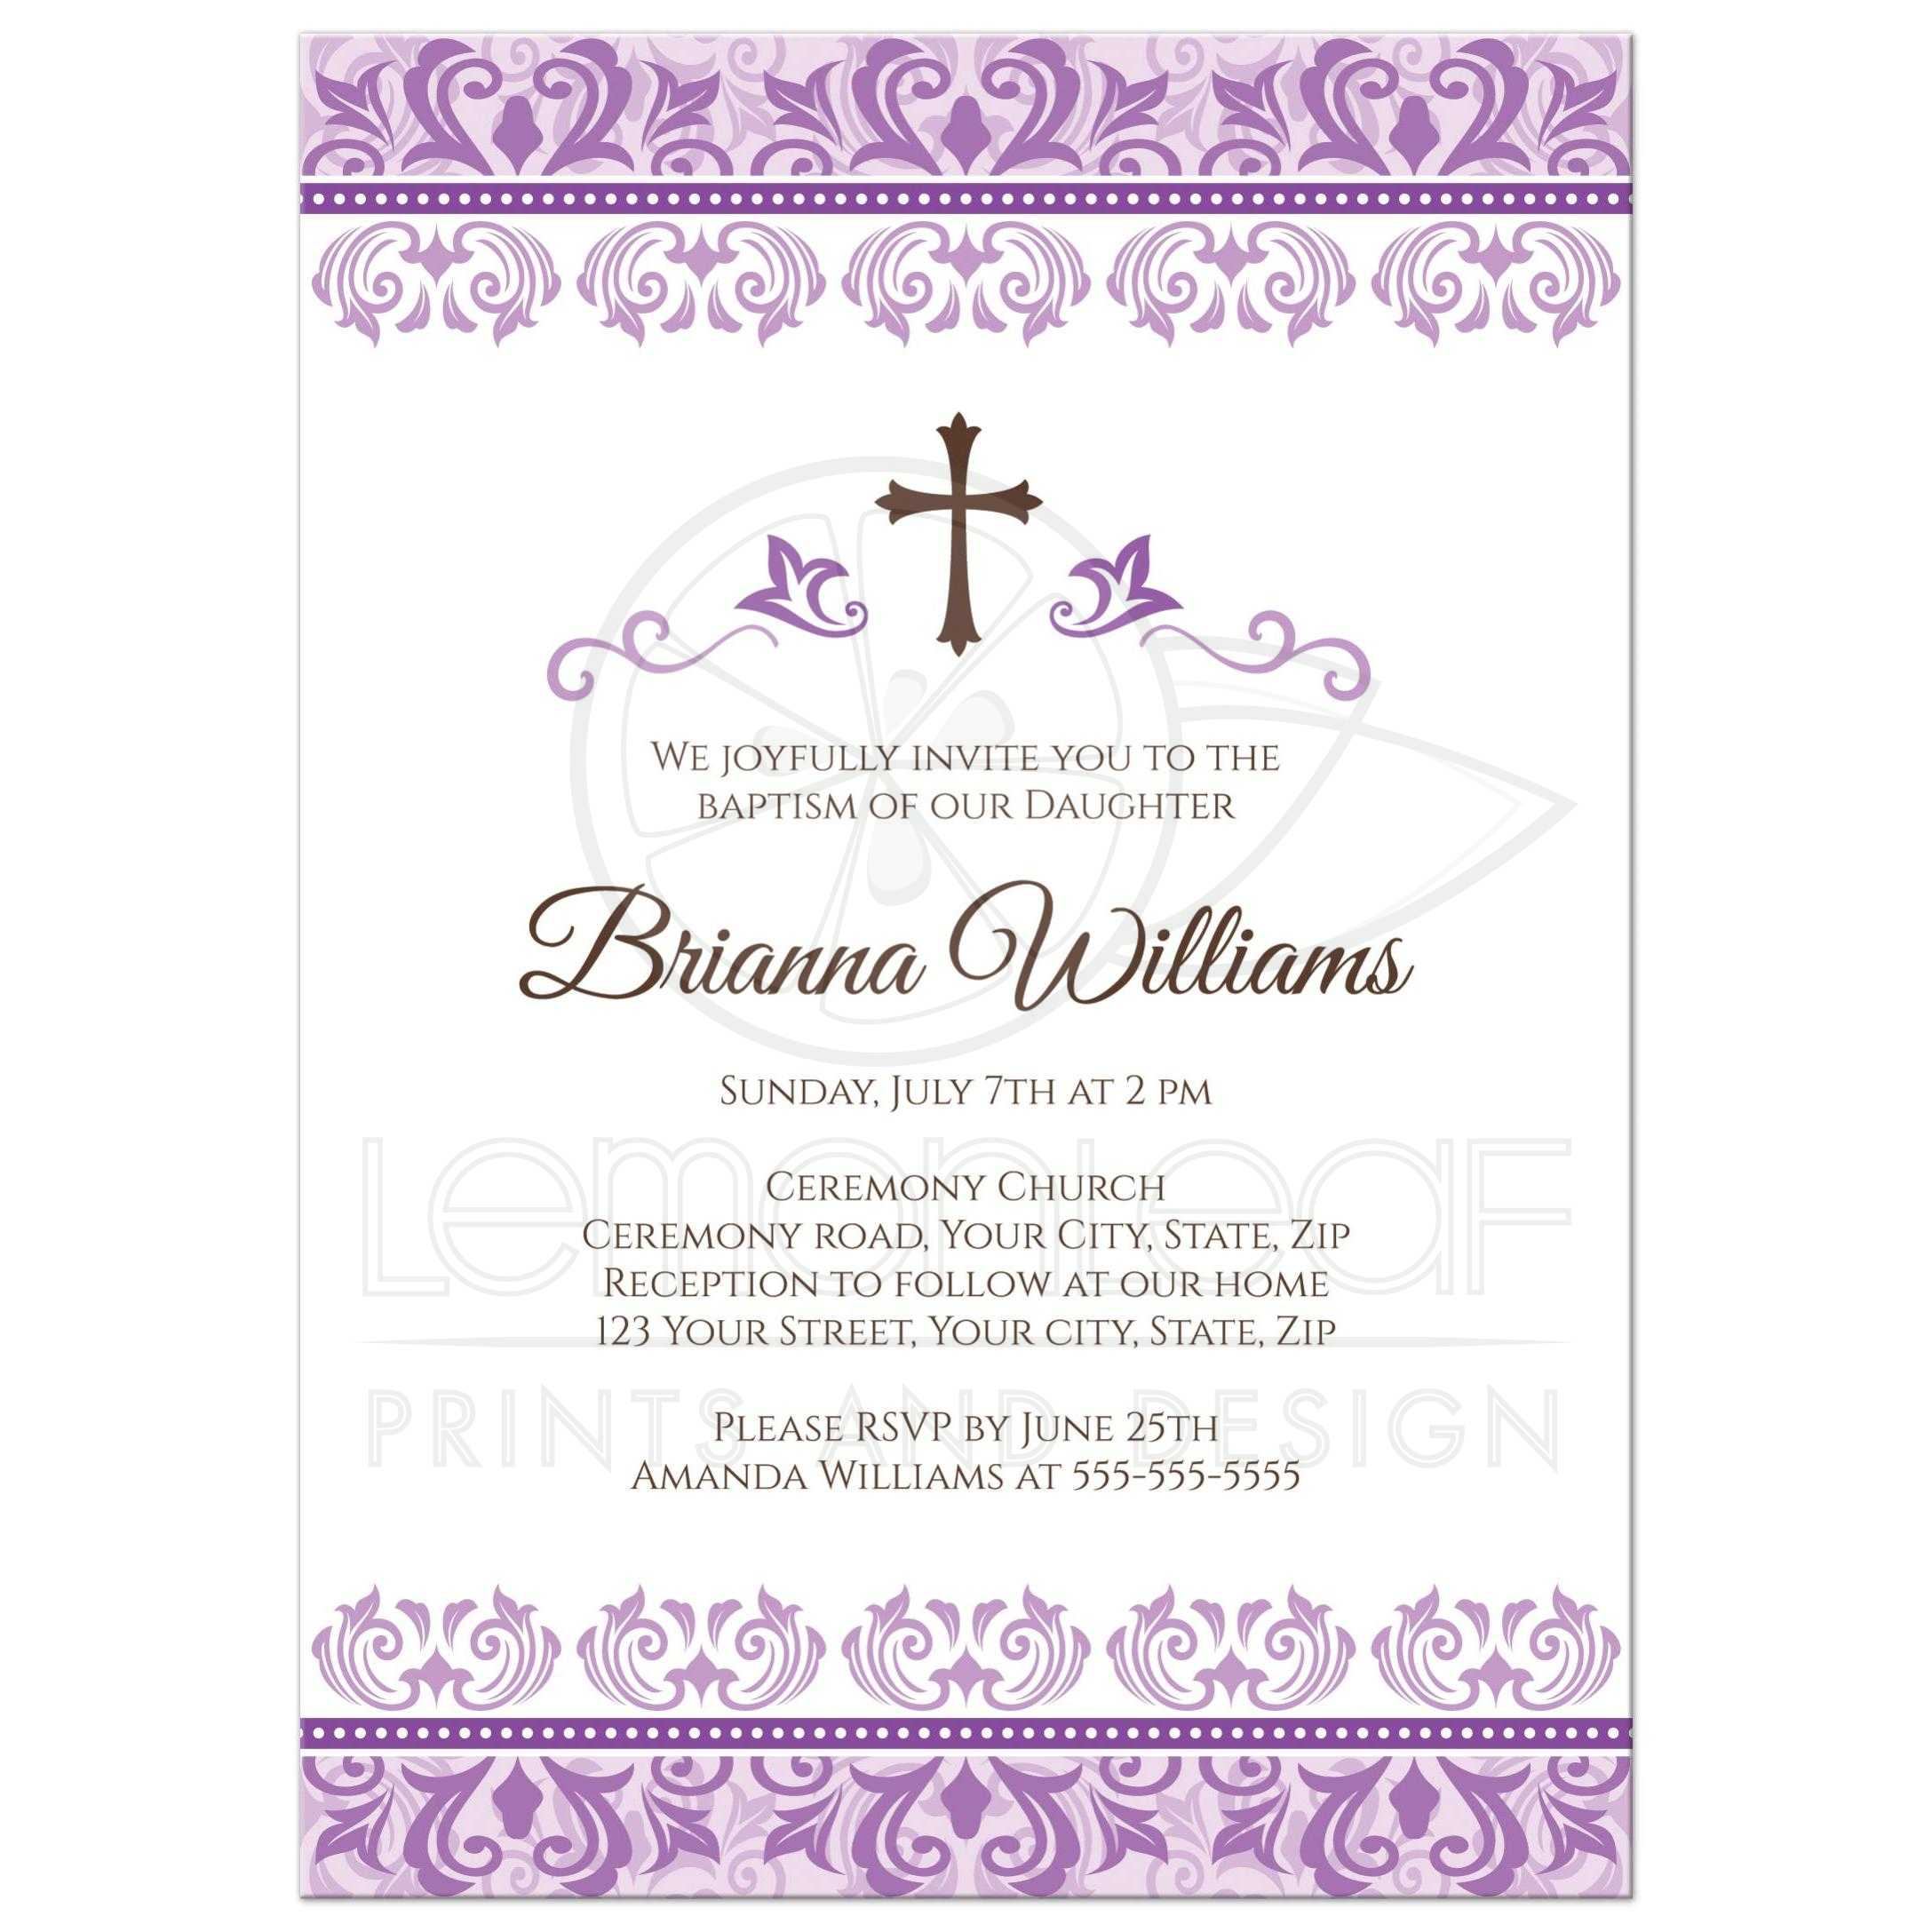 Elegant Baptism Or Christening Invitation For Baby Girls With Ornate,  Purple Damask Borders.